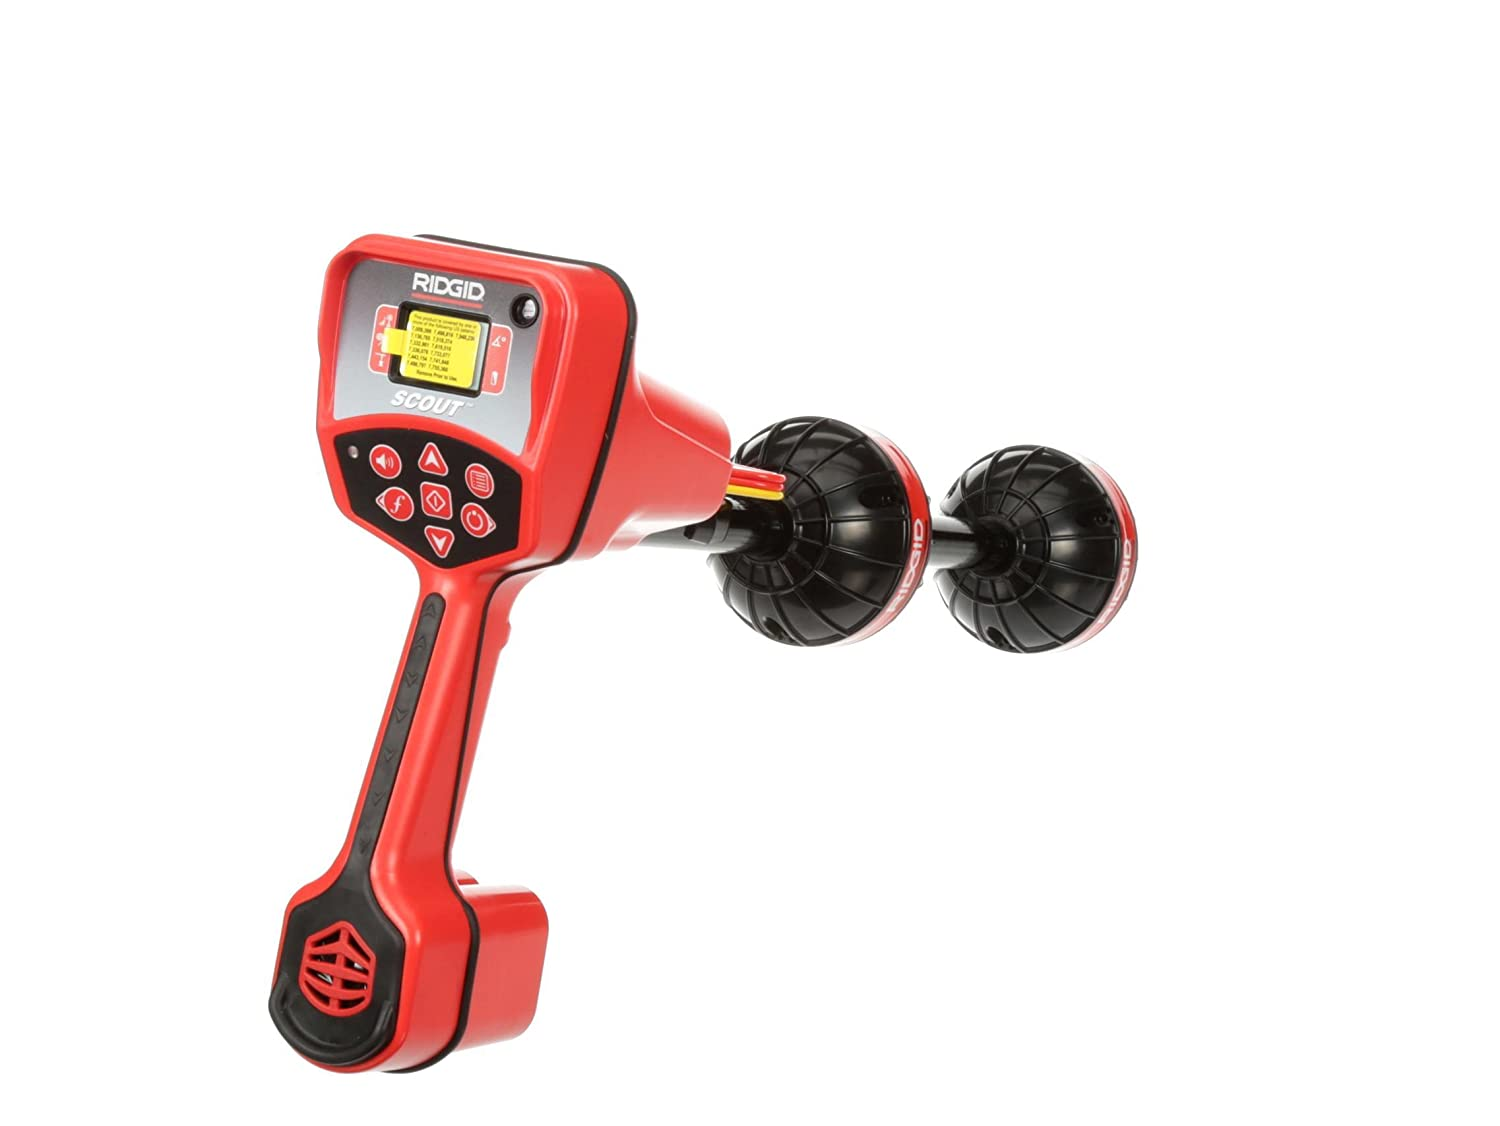 Underground Pipe Locator and Underground Cable Location Device /& 16728 Remote Transmitter 512 Hertz Sonde for Underground Pipe Location,Red//Black,Small RIDGID 19238 NaviTrack Scout Locator